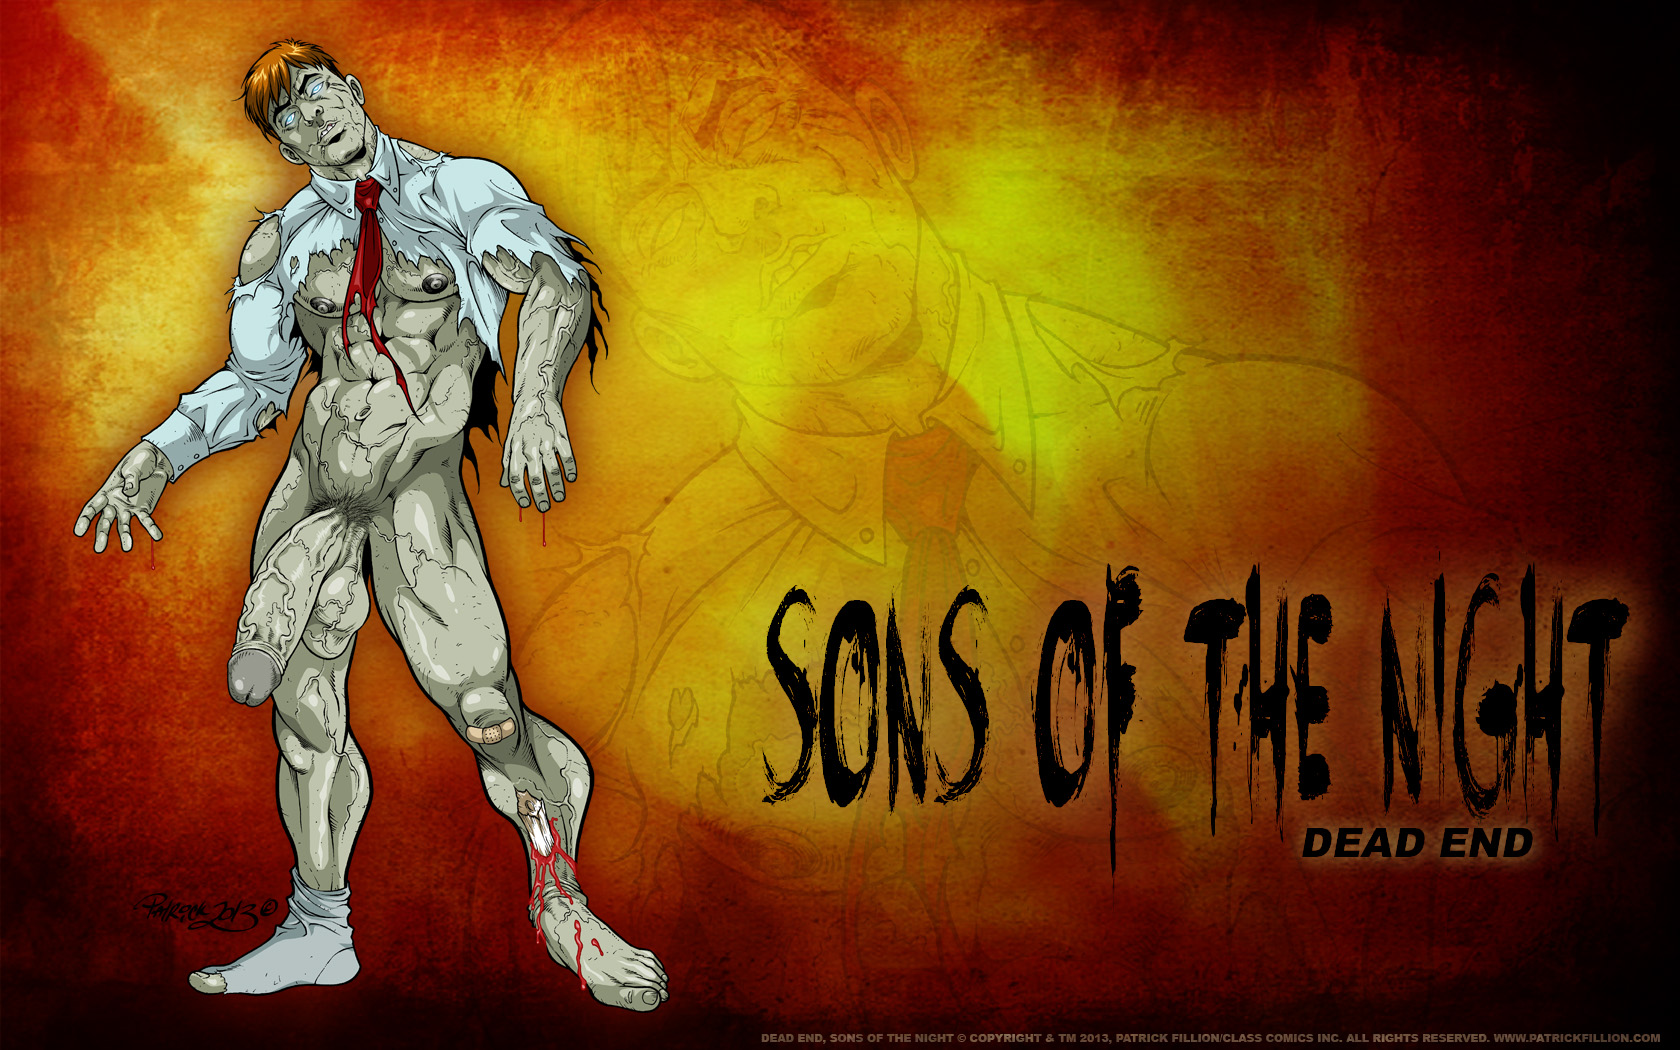 DEADENDsonsofthenight1680x1050